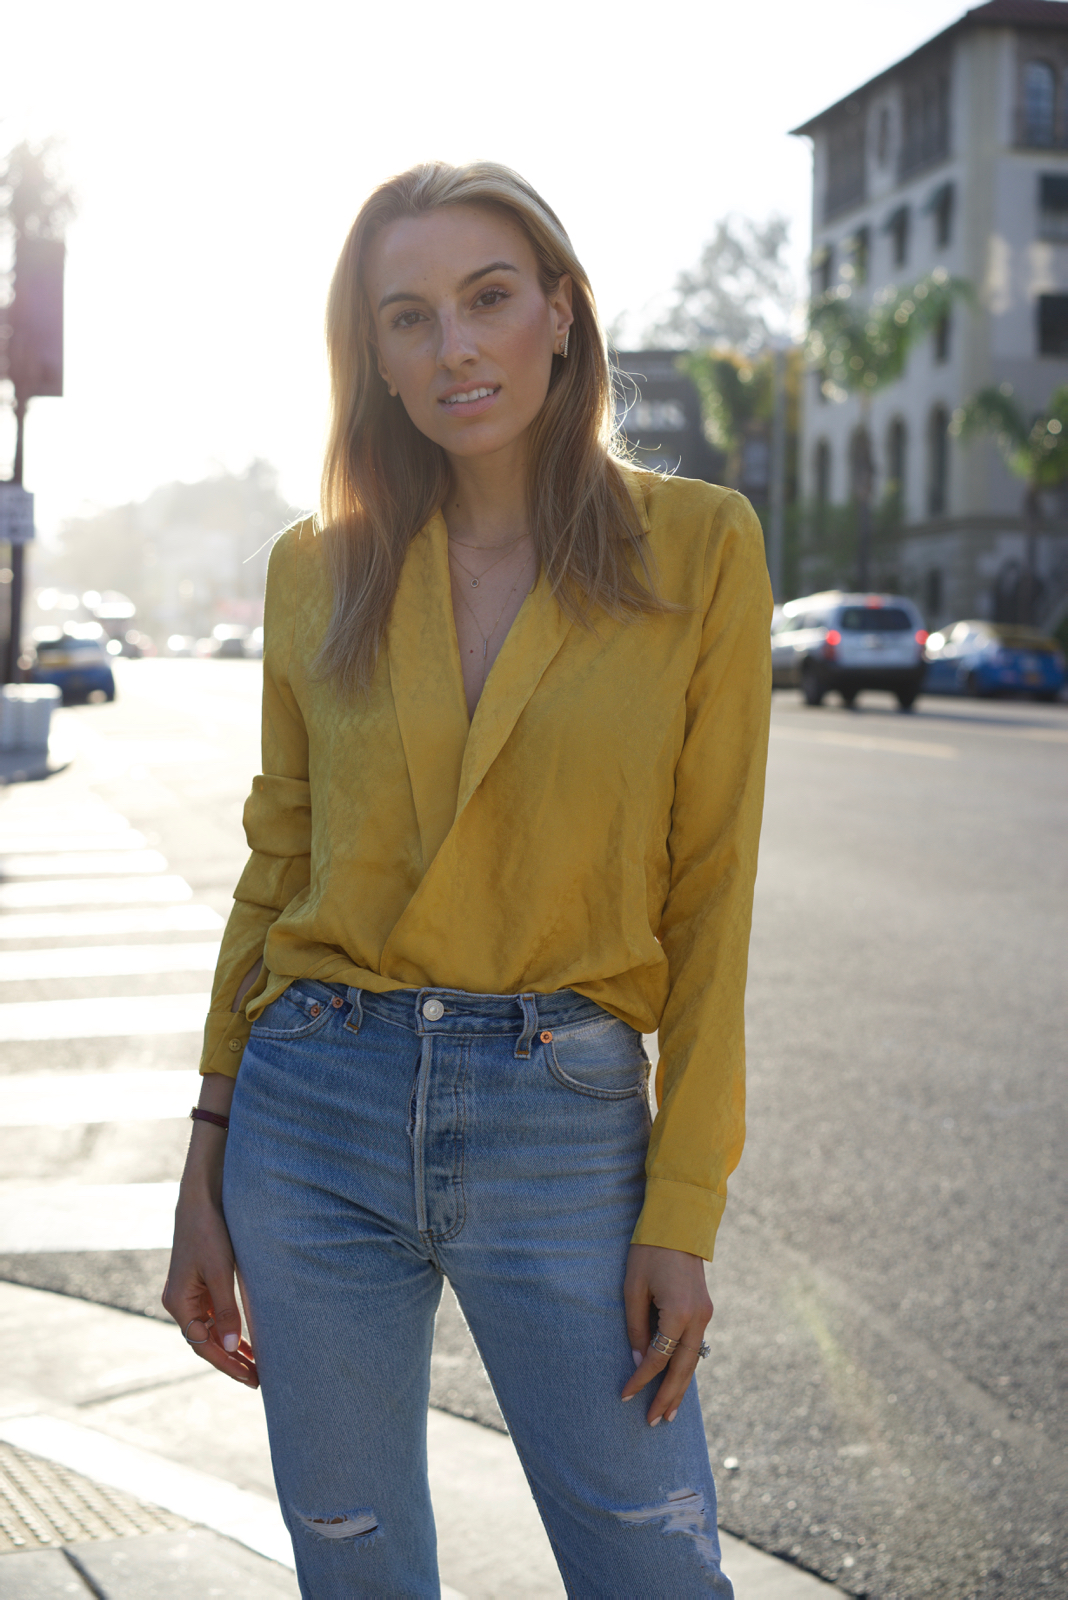 California, Travel, Sunset, Yellow, Spring Trends, Reformation,Golden hour, Chanel Shoes